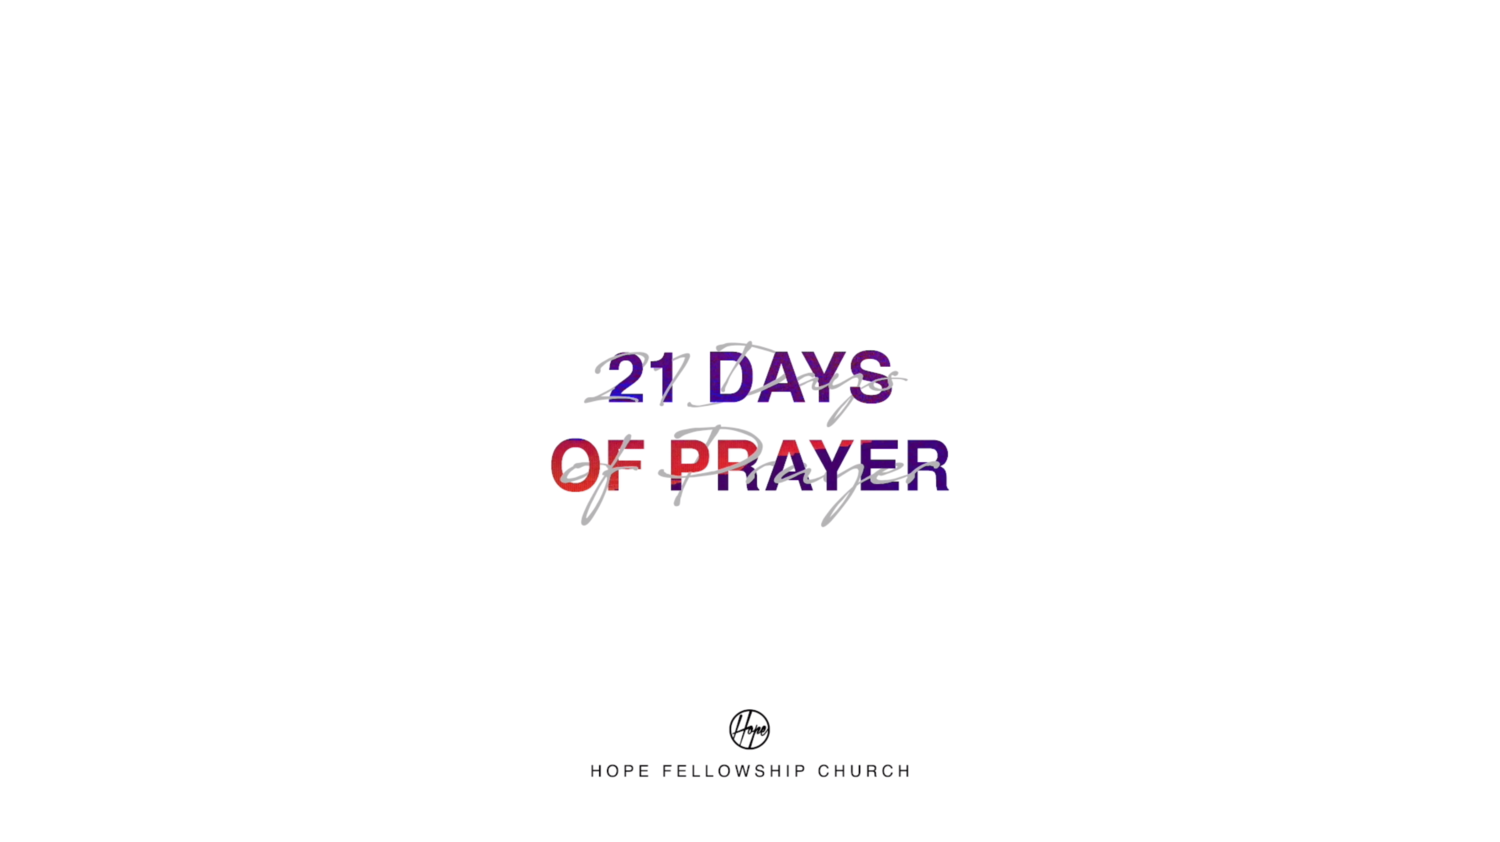 21 Days of Prayer Week 1